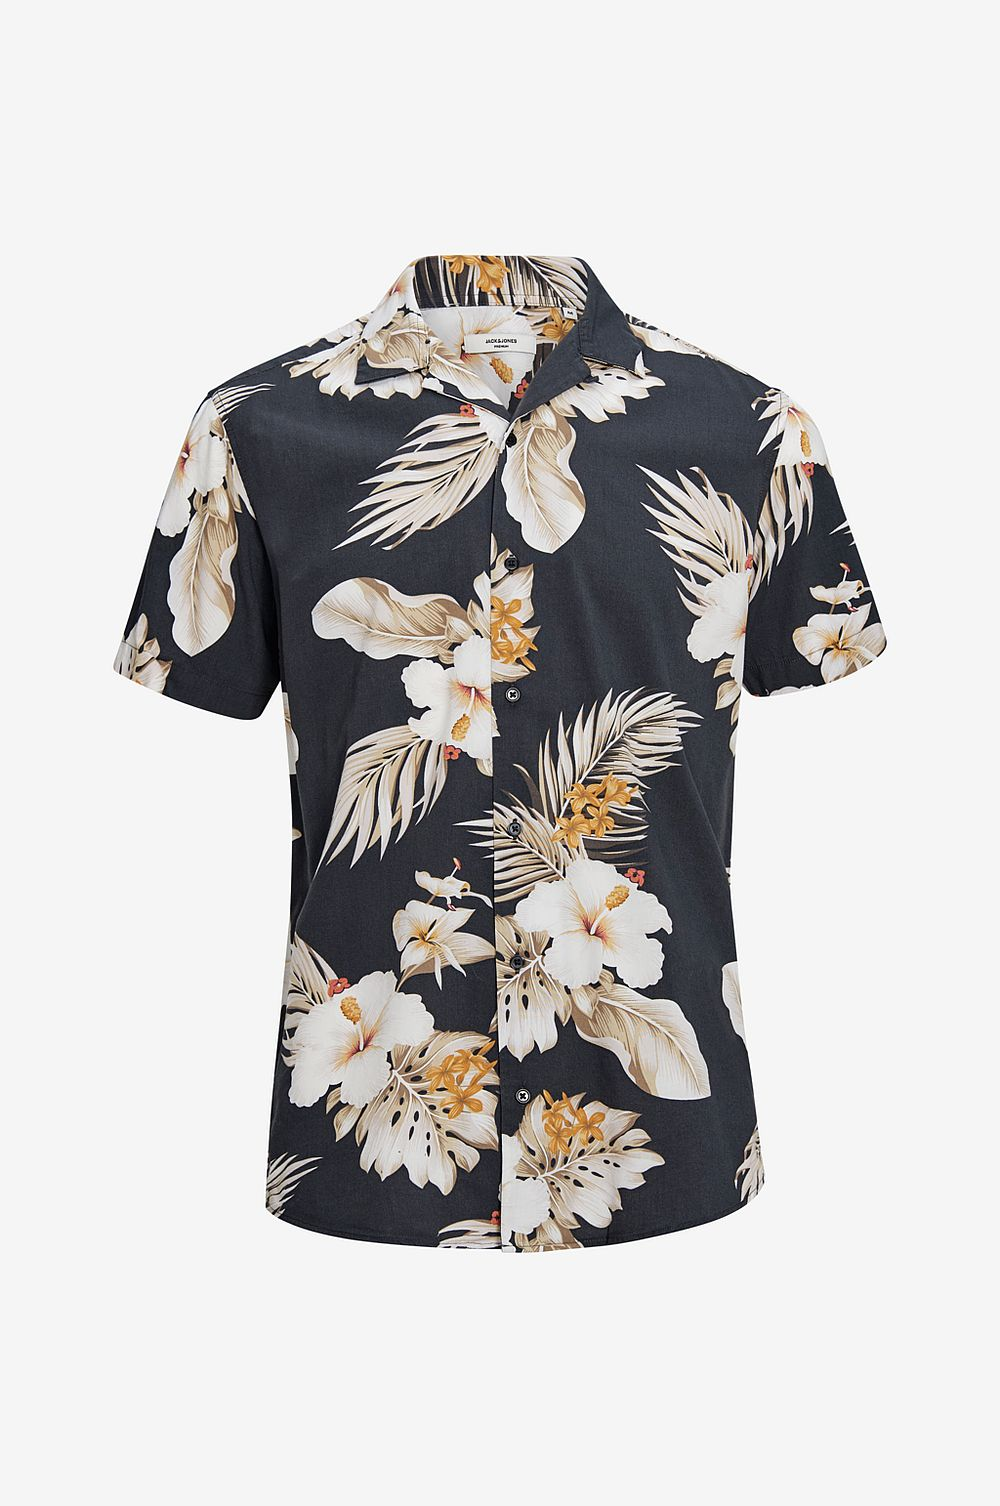 Jack & Jones Skjorta jprHawaii Resort Shirt S S - Svart - Herr